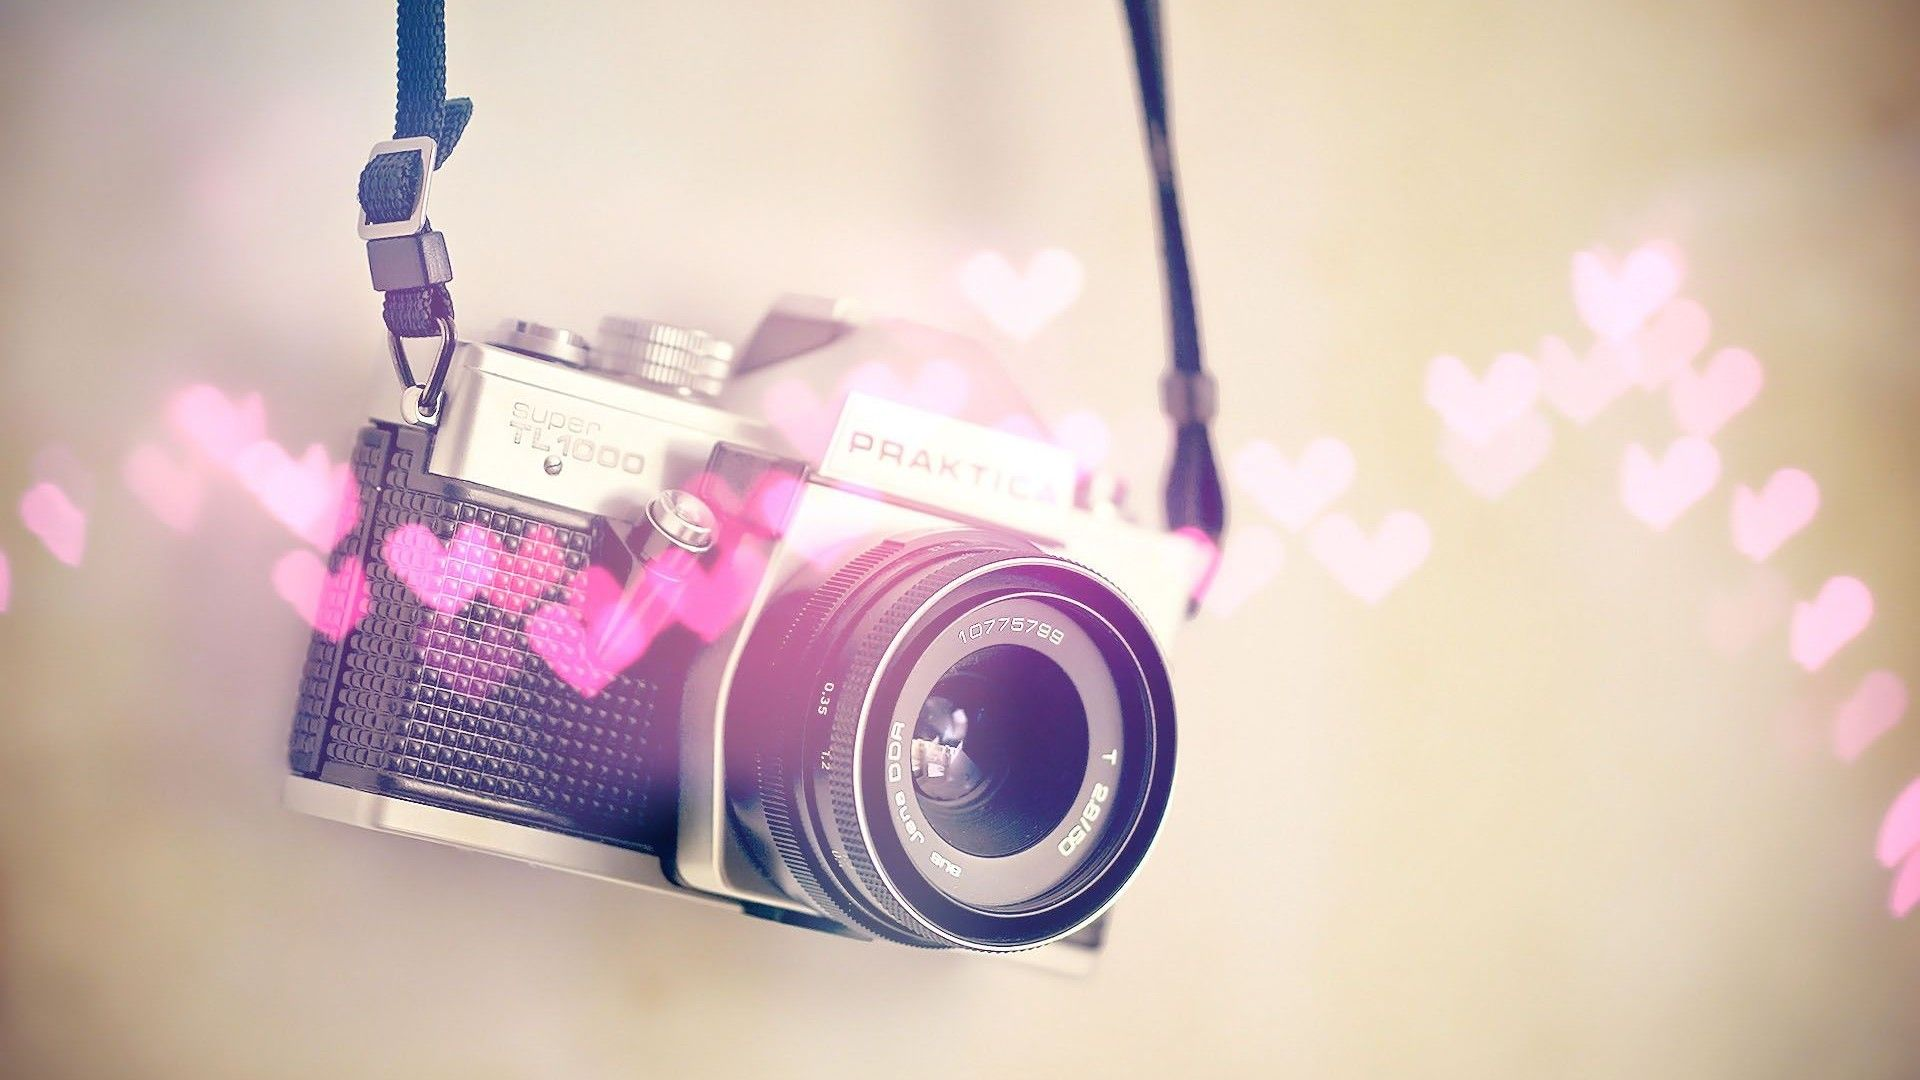 Camera Vintage Tumblr : Images for u e camera quotes tumblr collection camera wallpaper